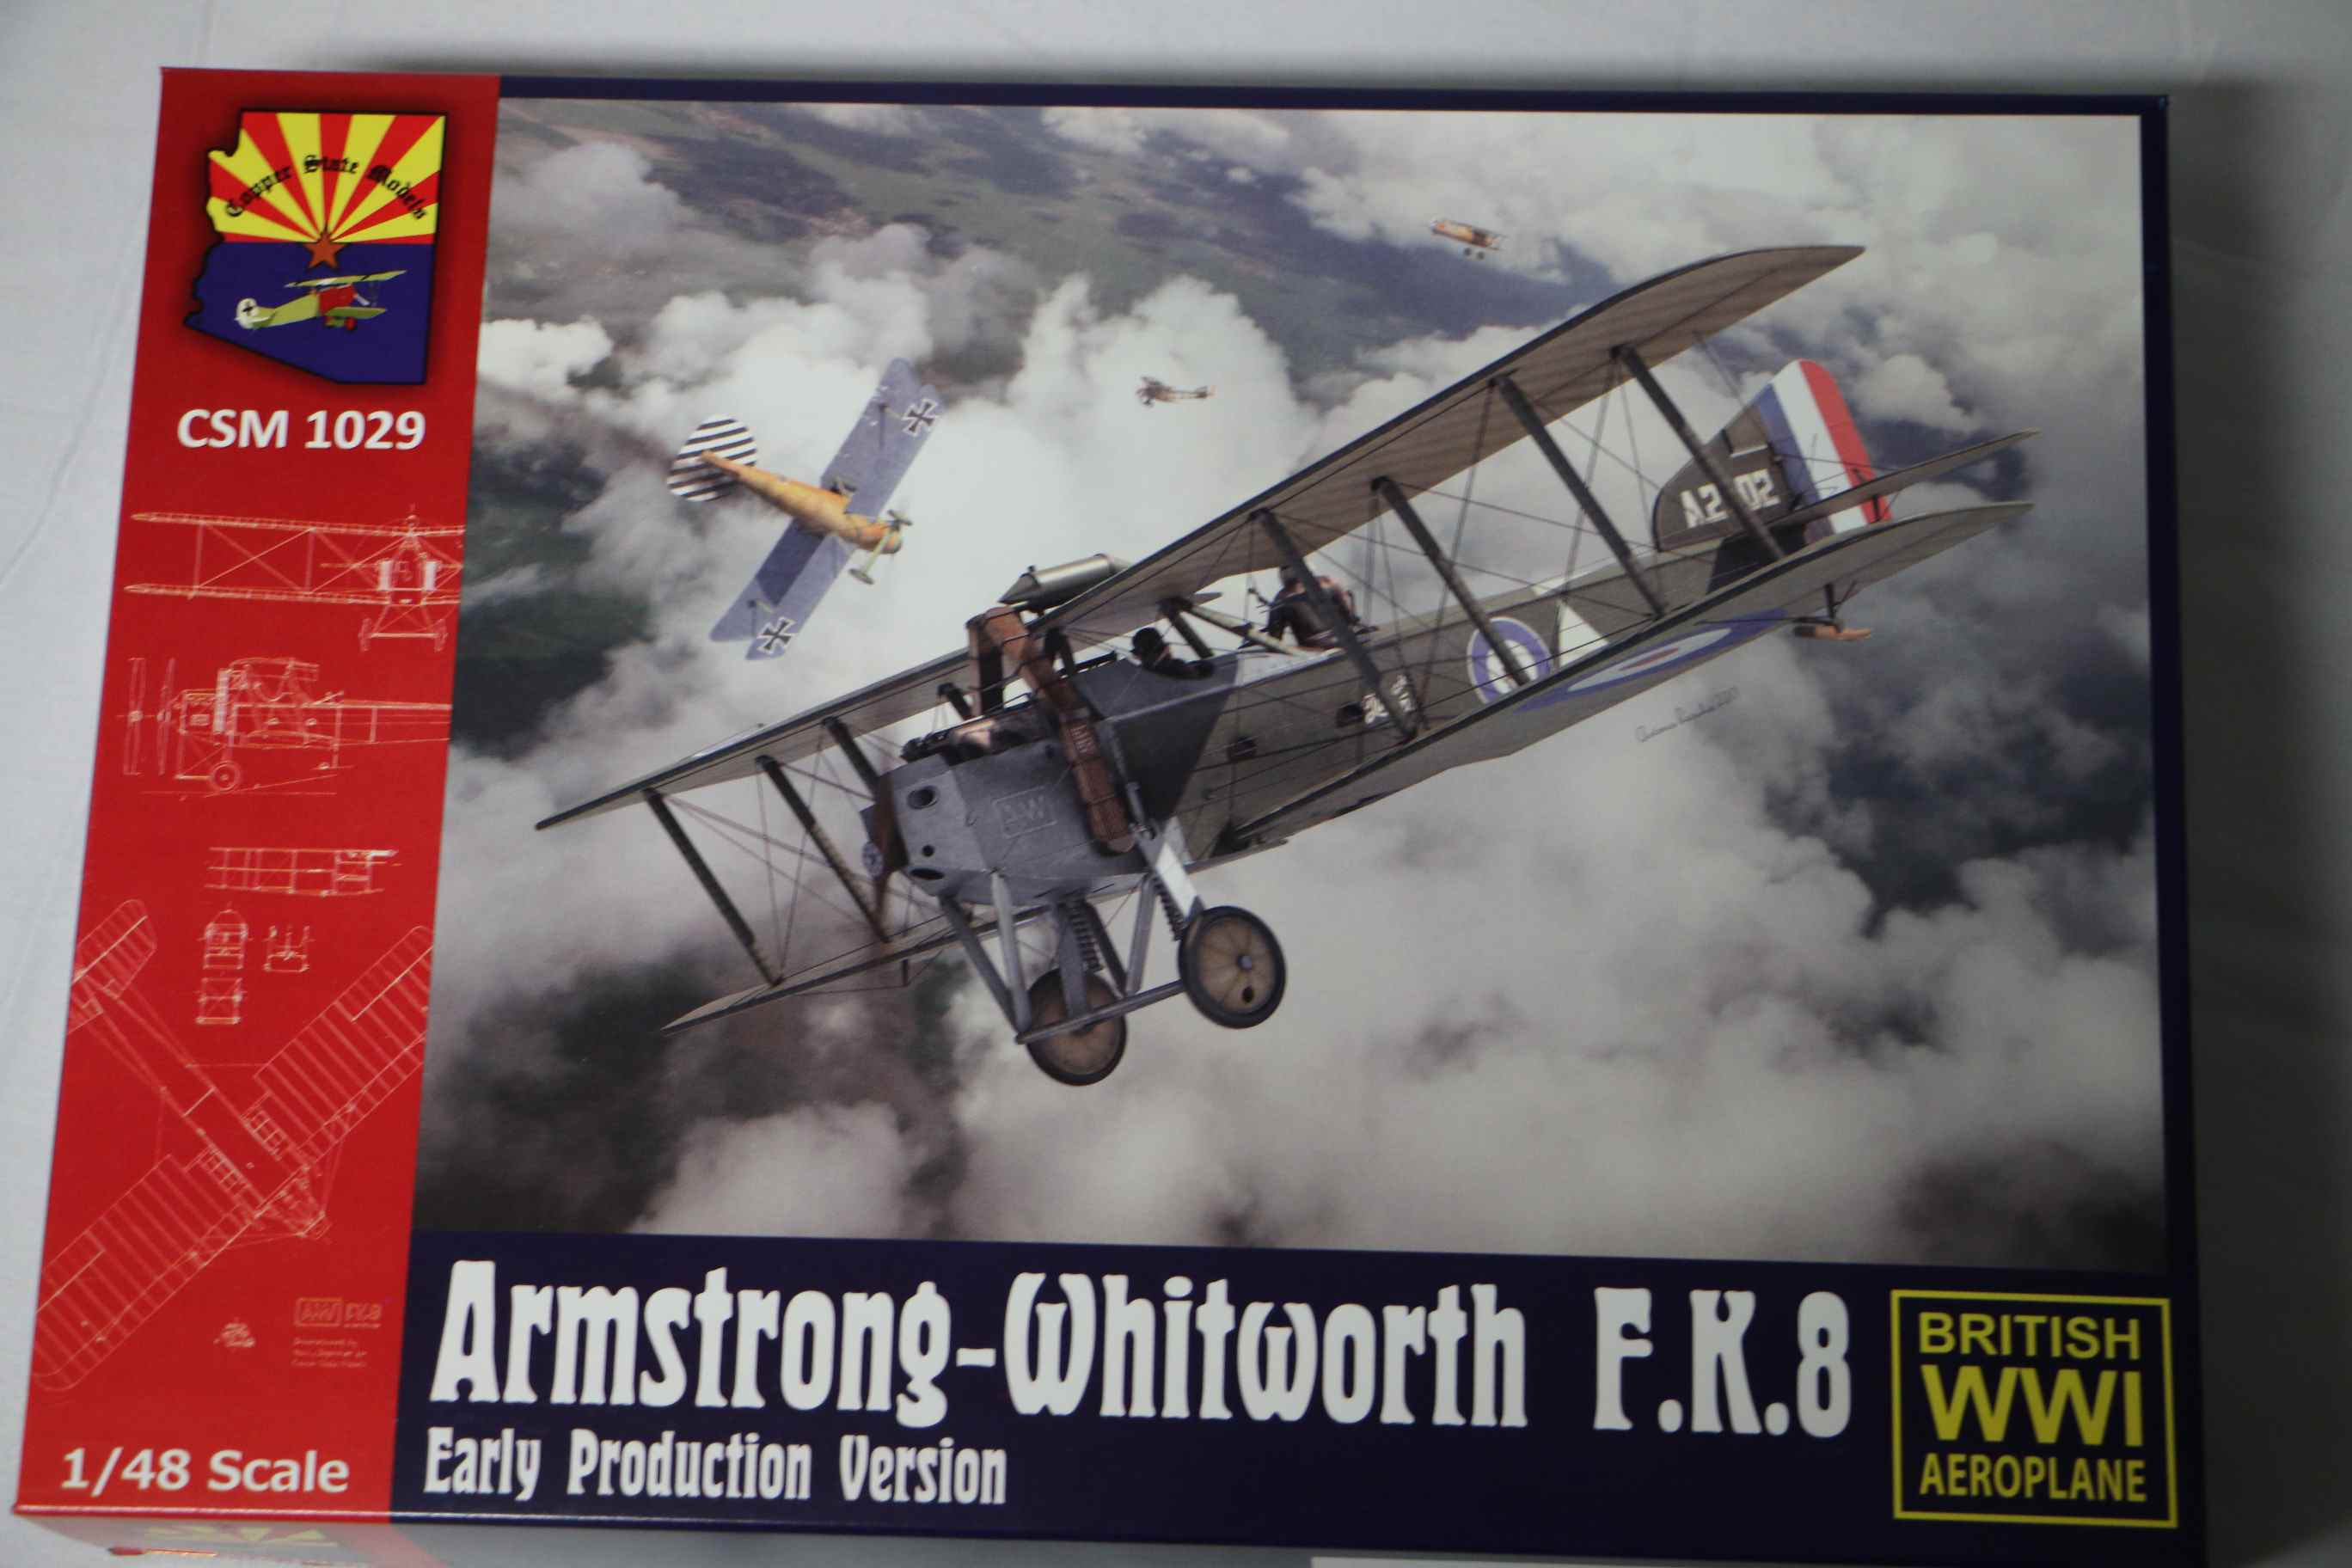 CSMK1029 - Copper State Models 1/48 Armstrong-Whitworth FK8 Early